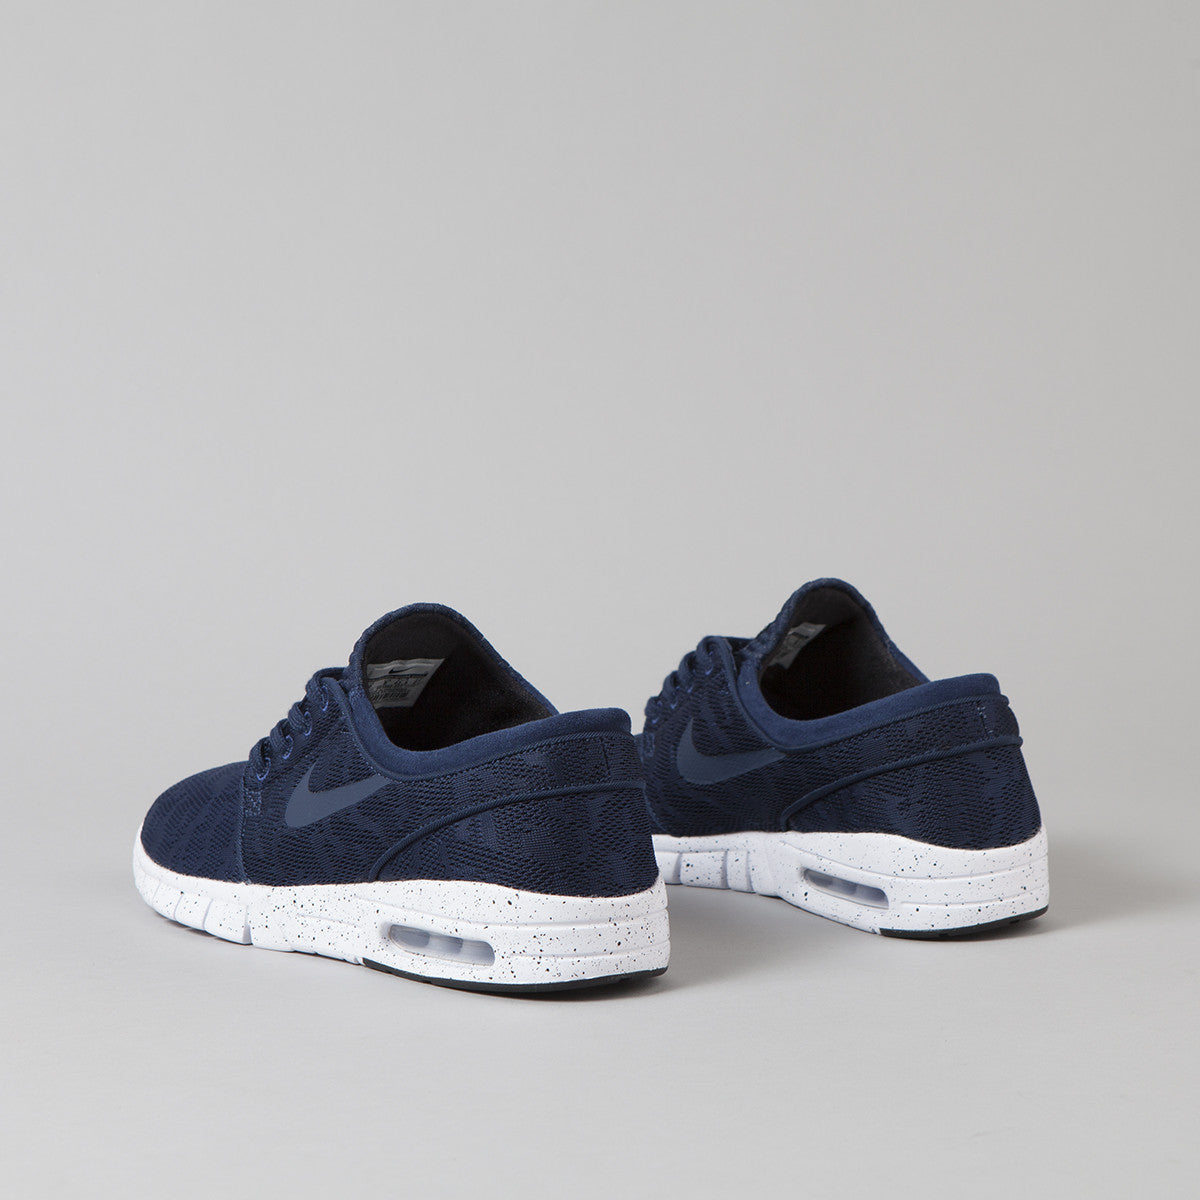 nike sb janoski max navy. Black Bedroom Furniture Sets. Home Design Ideas